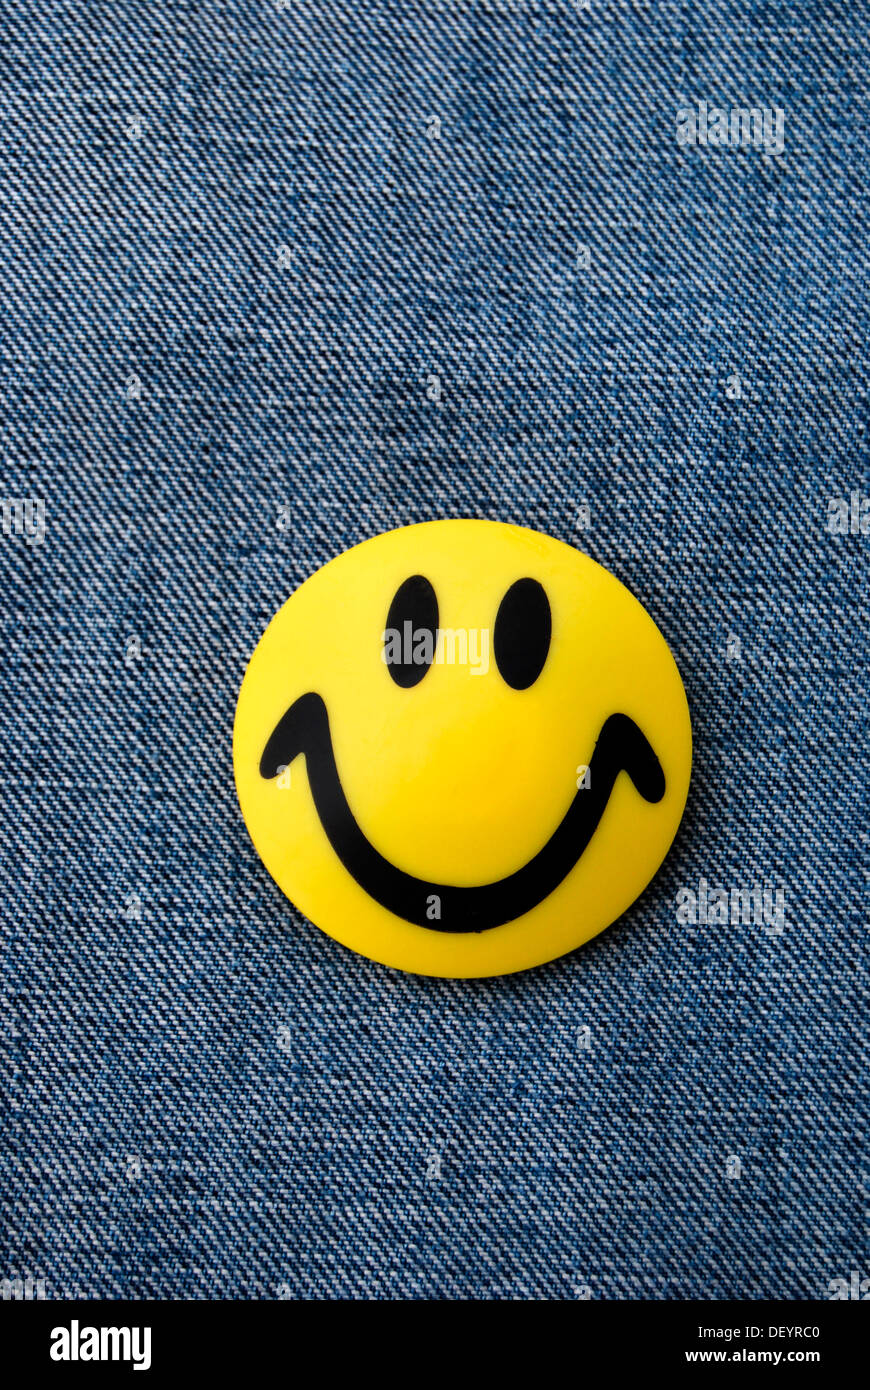 Smiley, kitchen magnets, yellow, jeans, good mood - Stock Image